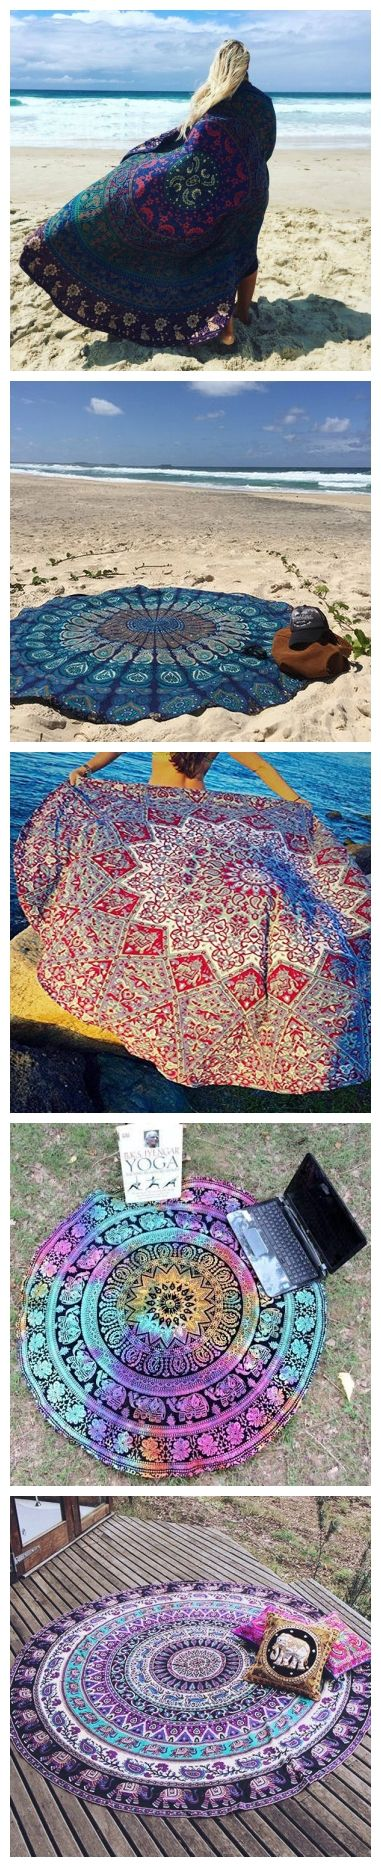 150cm Bohemian Style Thin Chiffon Beach Yoga Towel Mandala Round Bed Sheet Tapestry Tablecloth